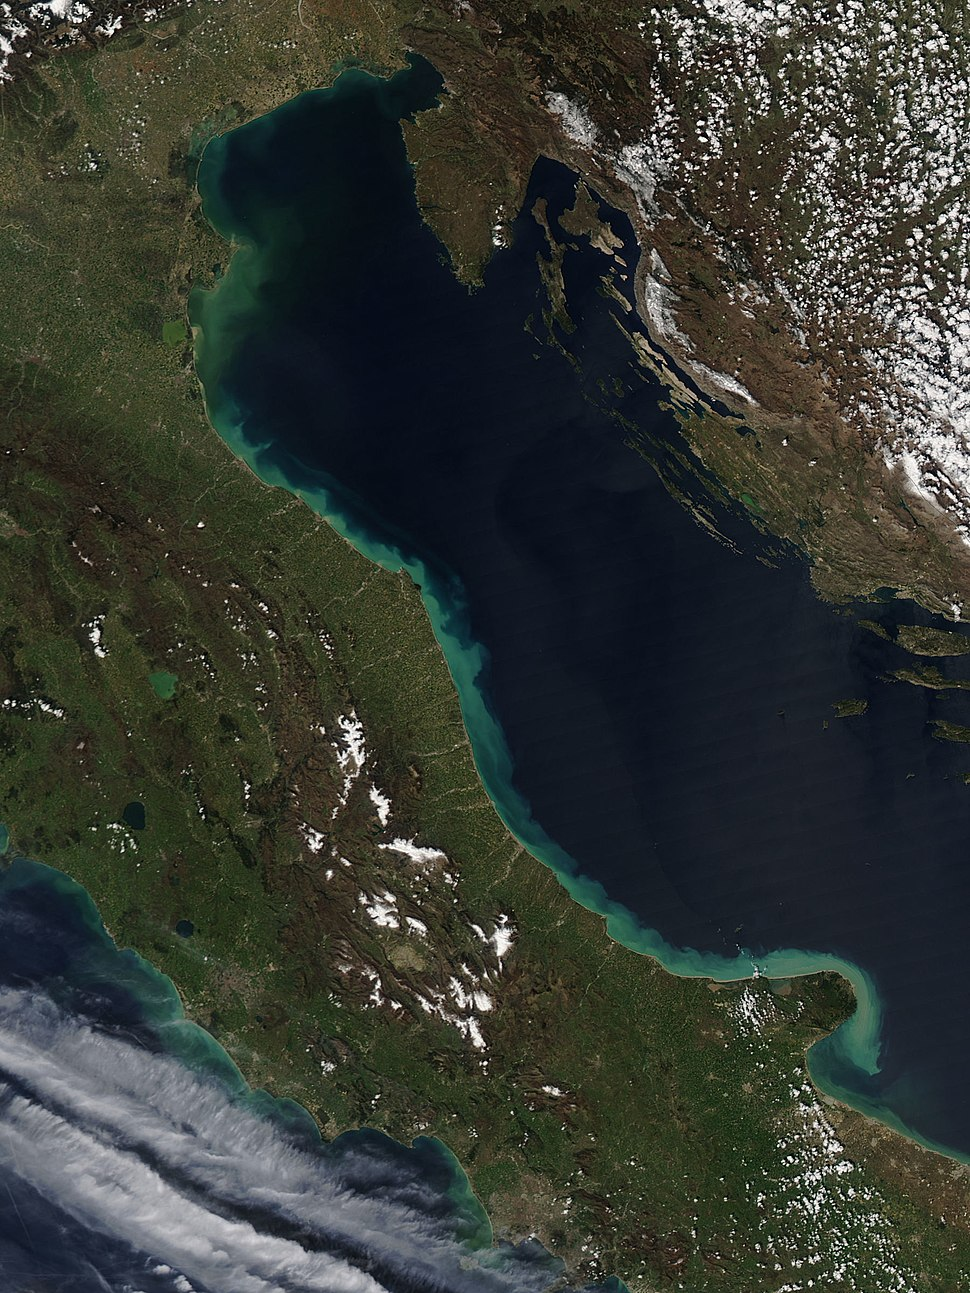 Spring Runoff in the Adriatic Sea